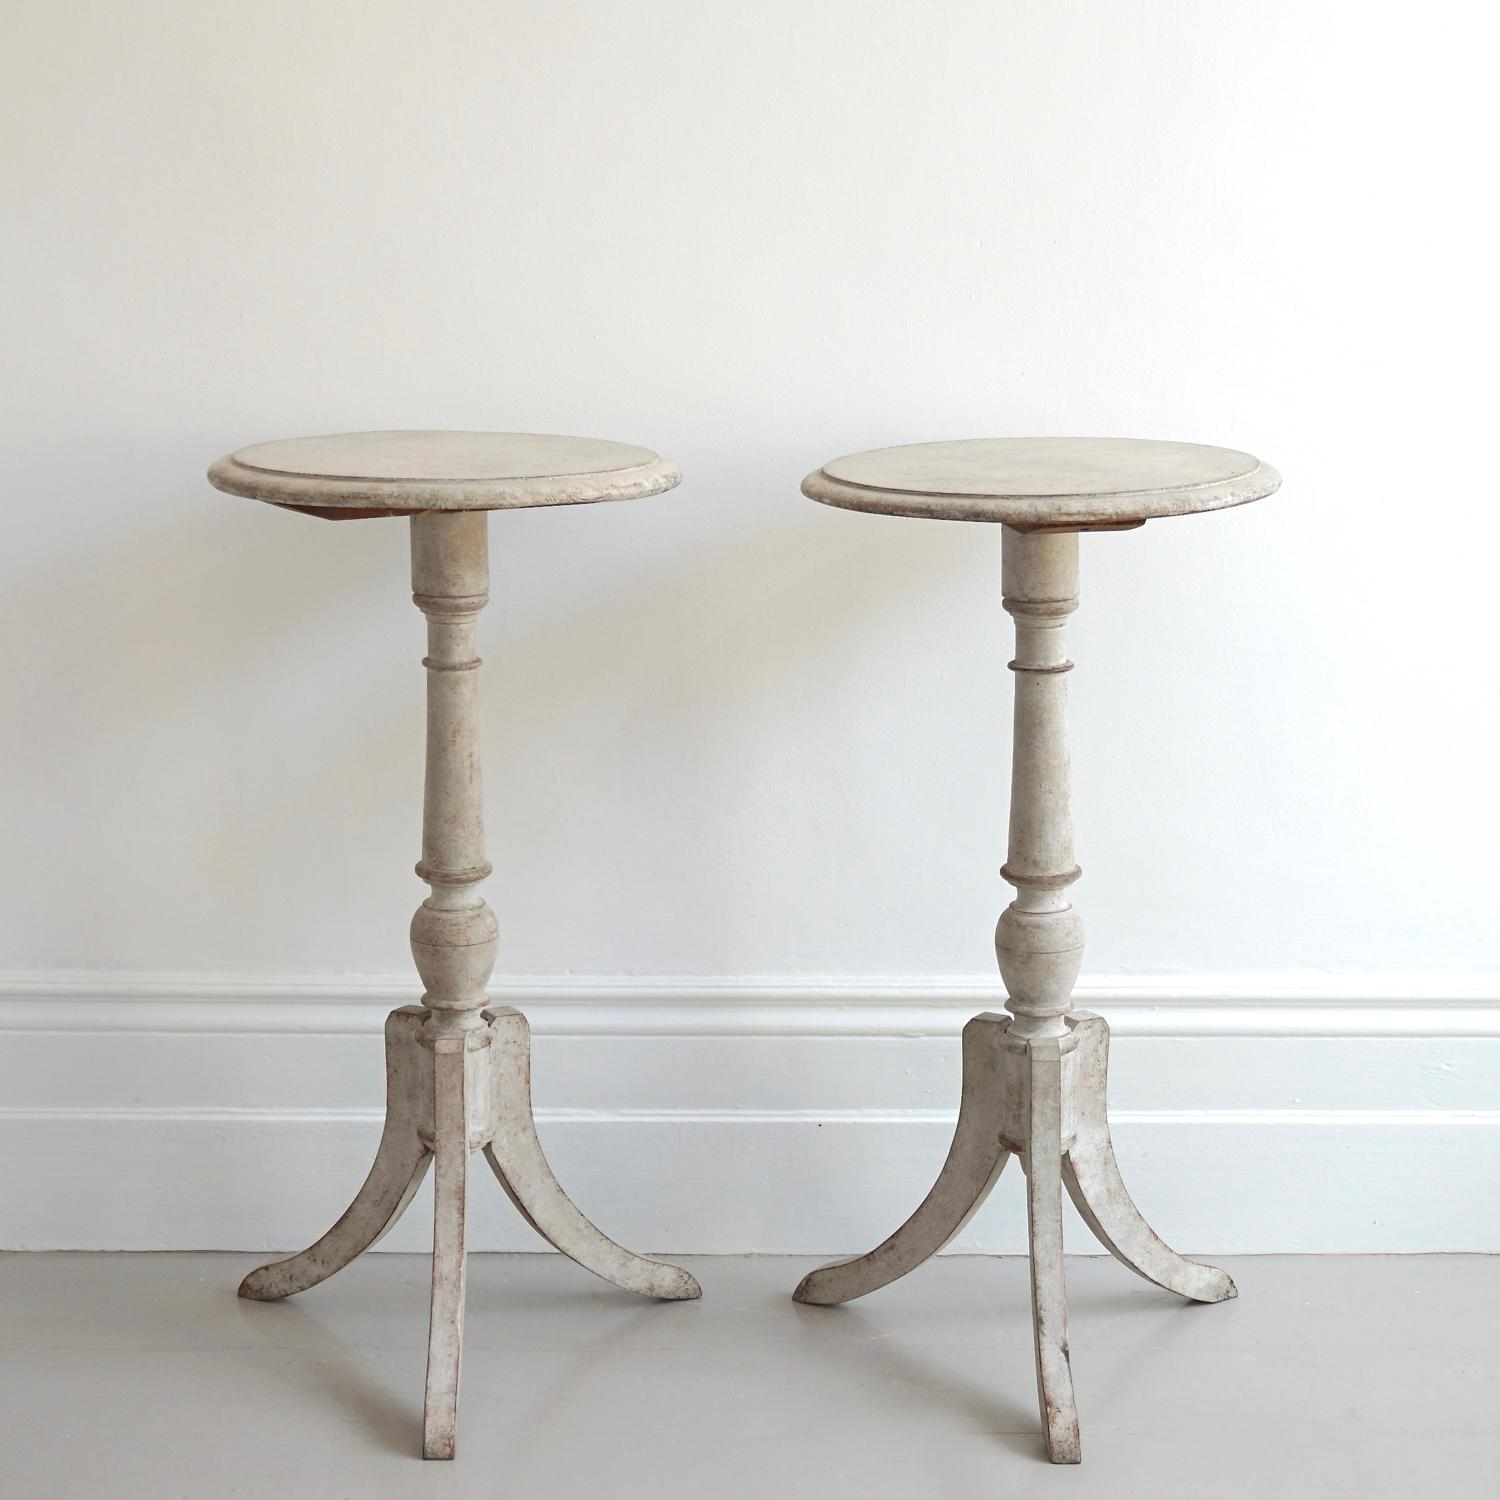 PAIR OF 19TH CENTURY GUSTAVIAN STYLE SIDE TABLES